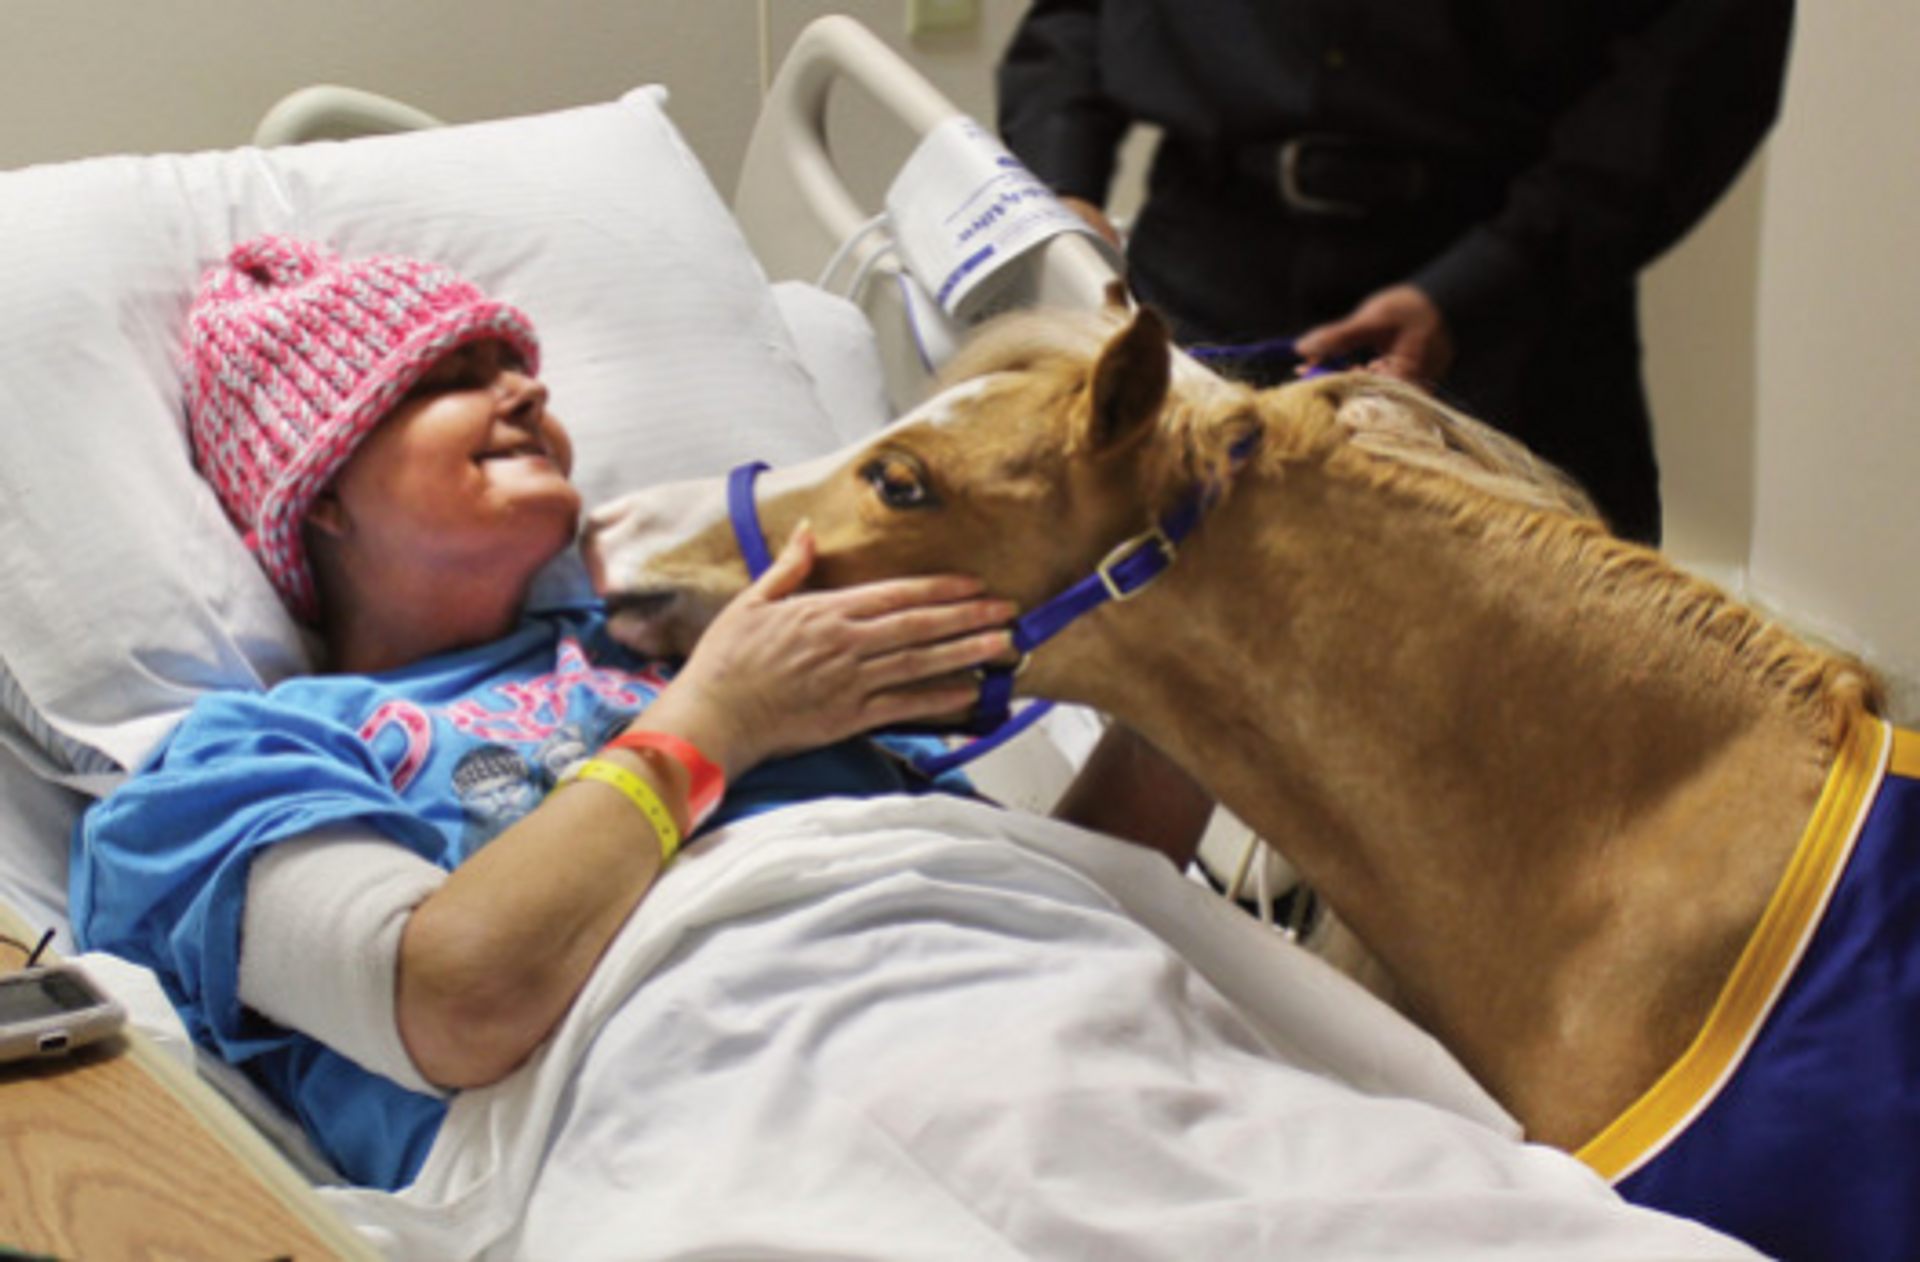 Miniature Therapy Horse, Hamlet, brings love to those who are ill.